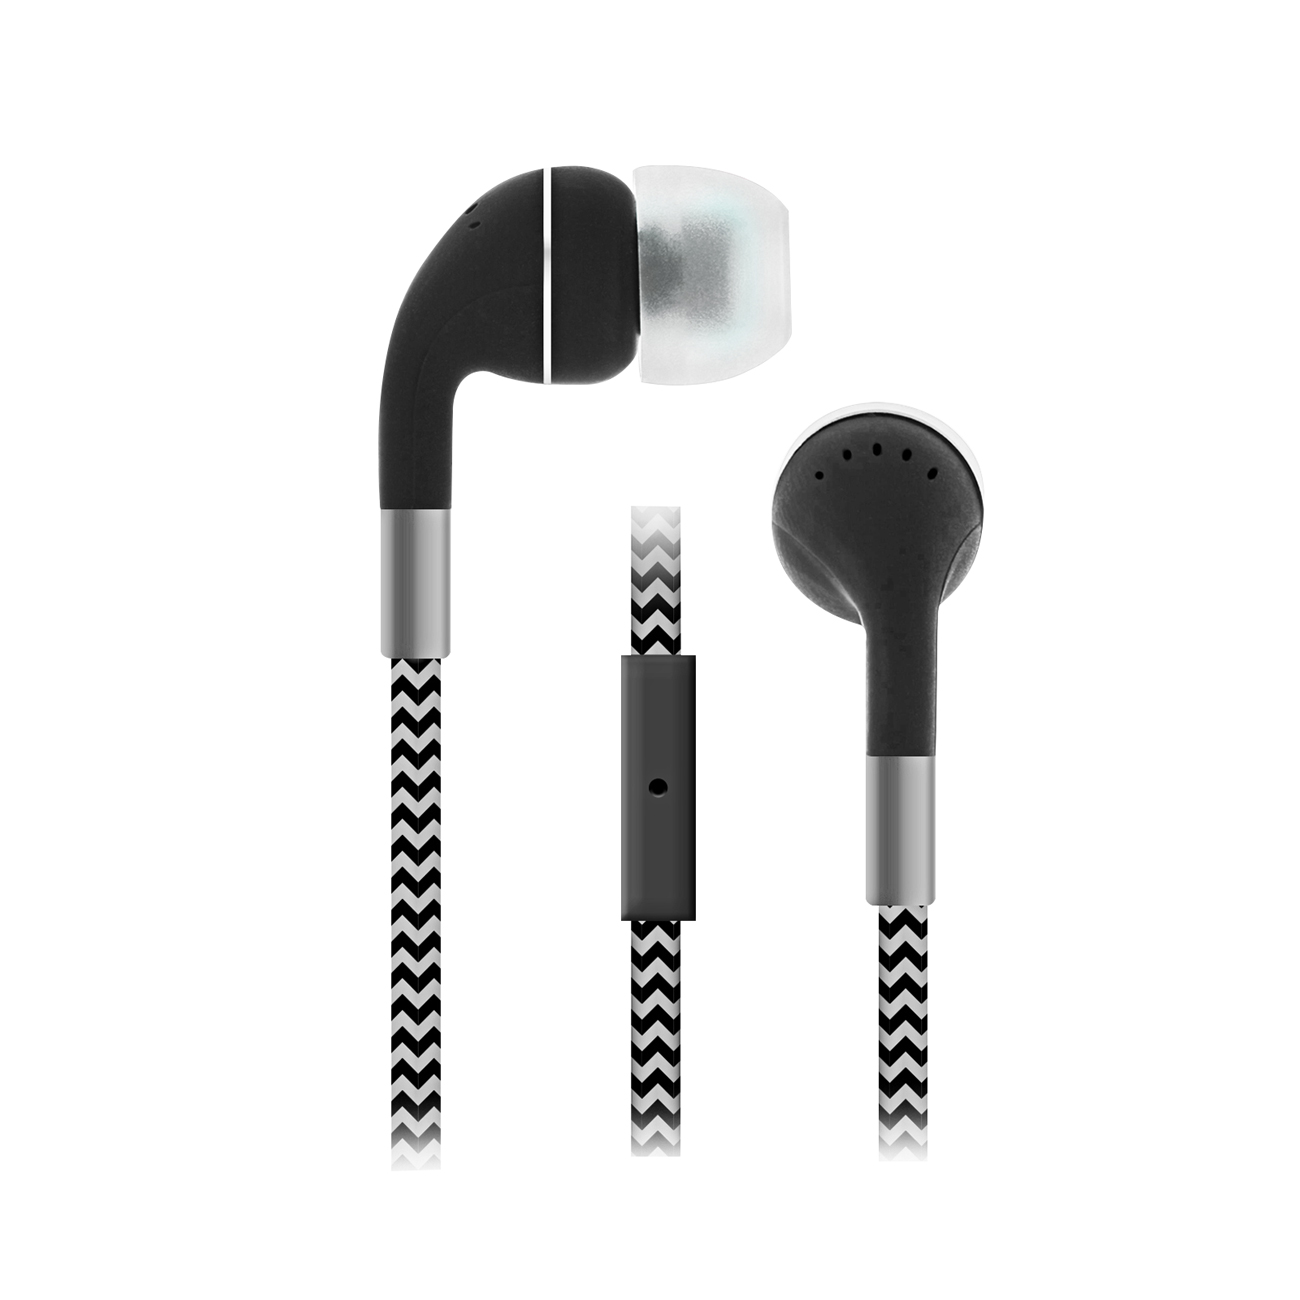 Sentry Industries HM650: Cord Plus Stereo Earbuds with in-line Mic In Black